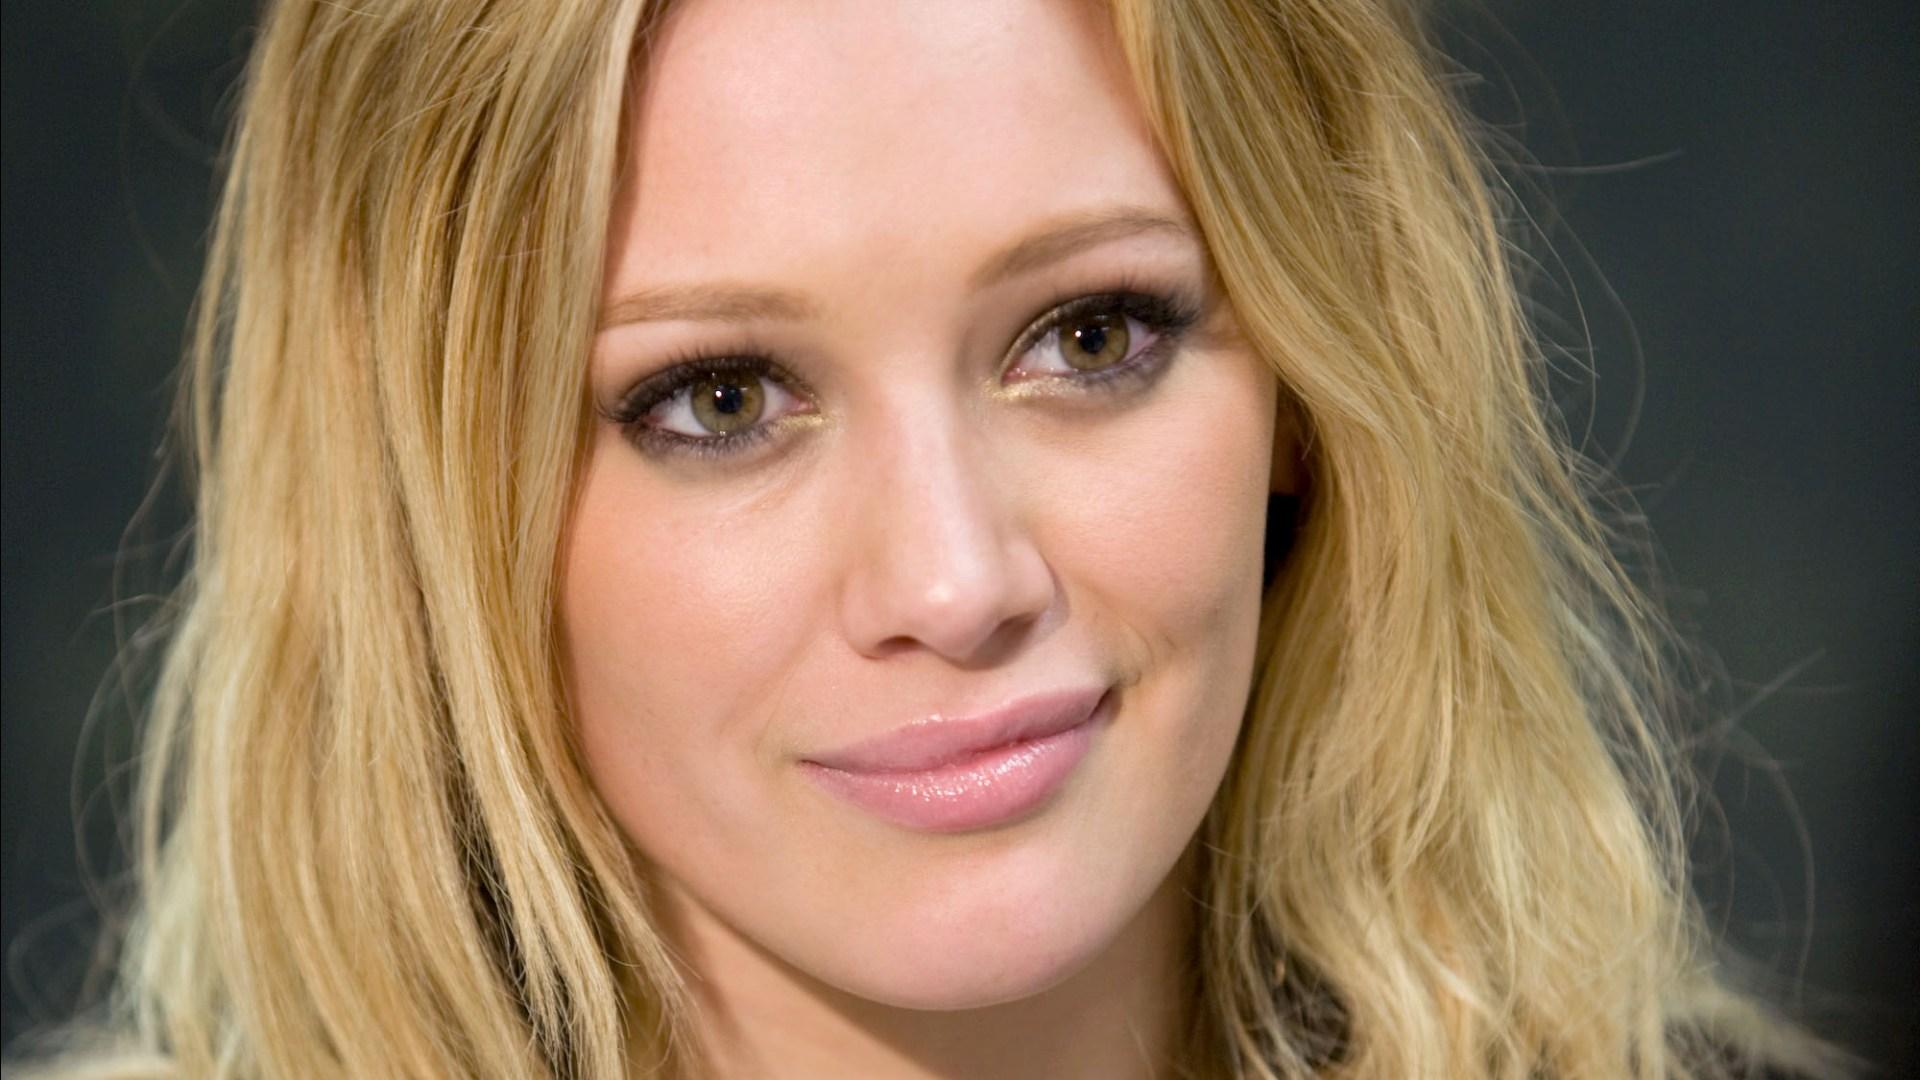 Lovely Hilary Duff Cute Smile Face Look With Hair Style Still Desktop Background Laptop Pictures Hd Free